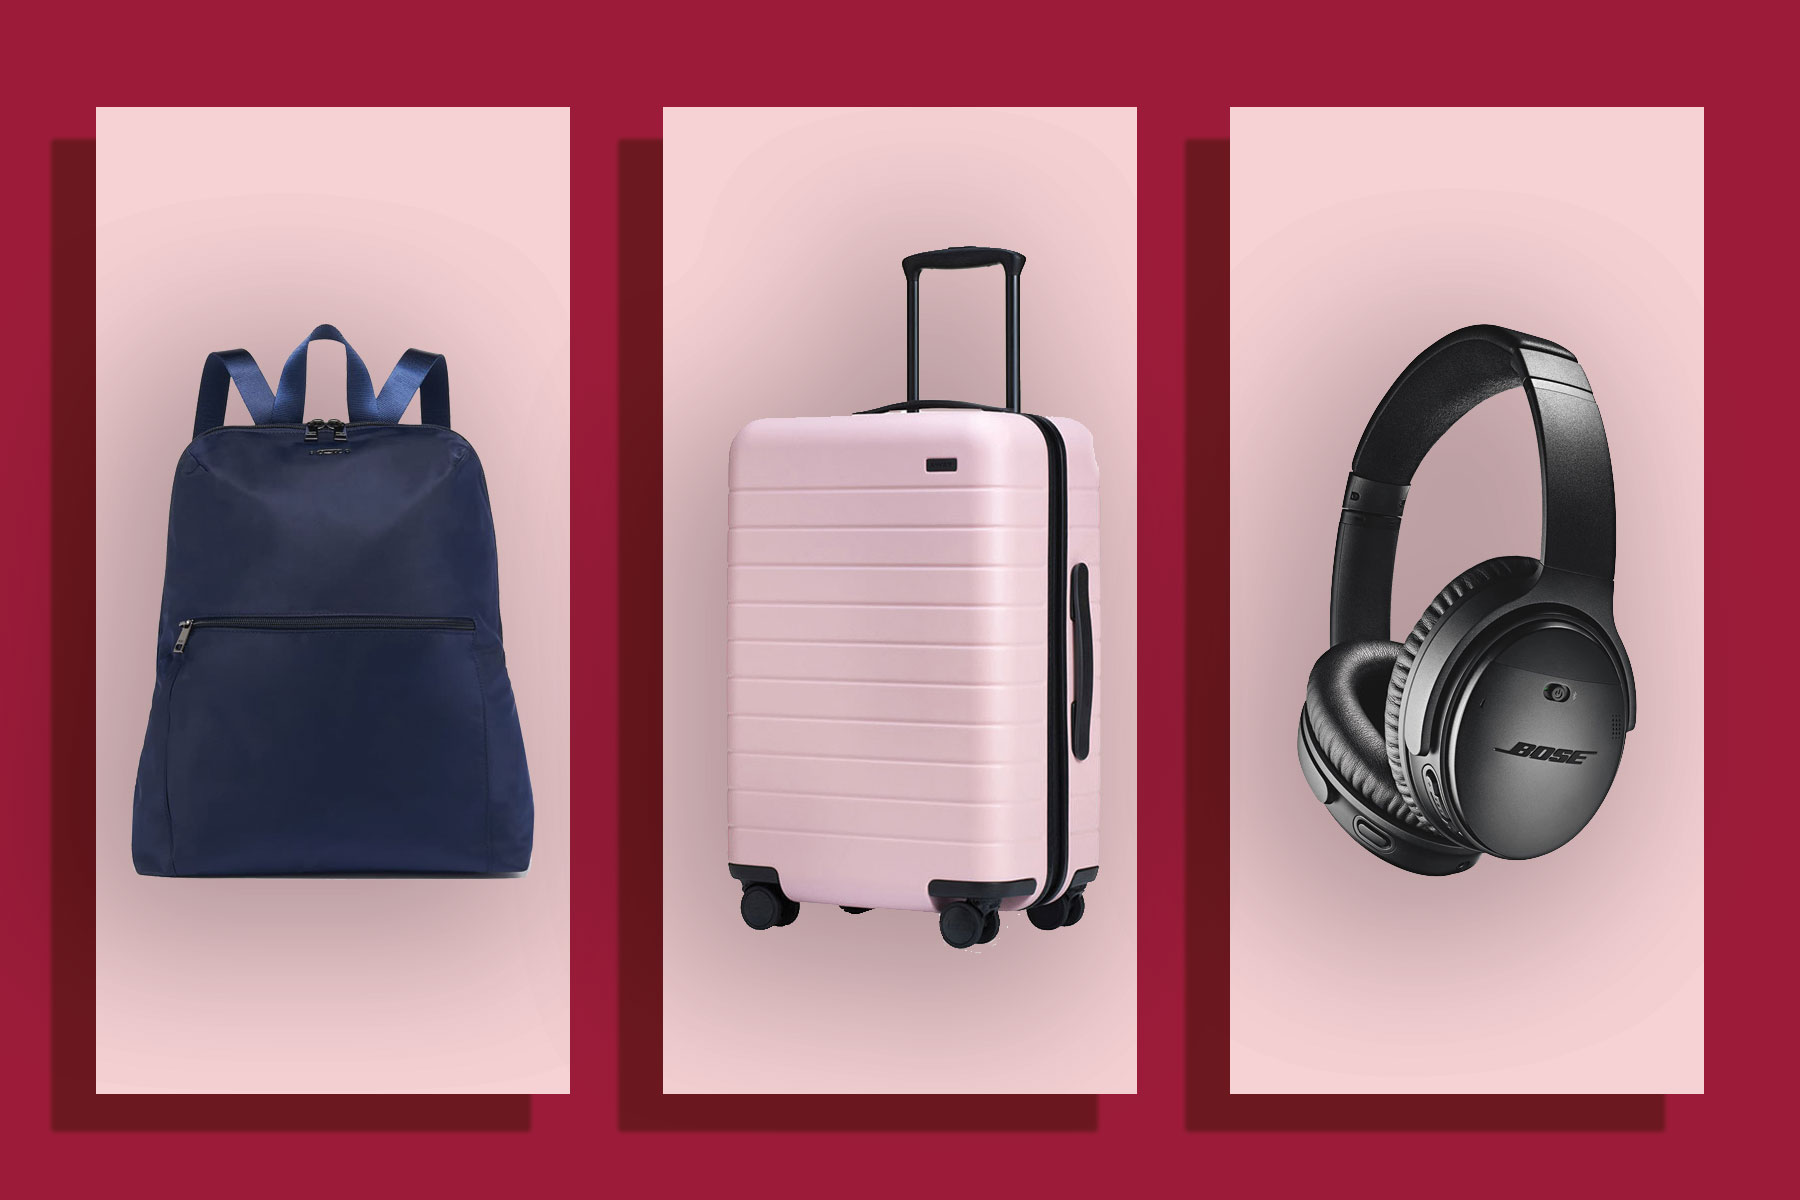 Backpack, suitcase, and headphones